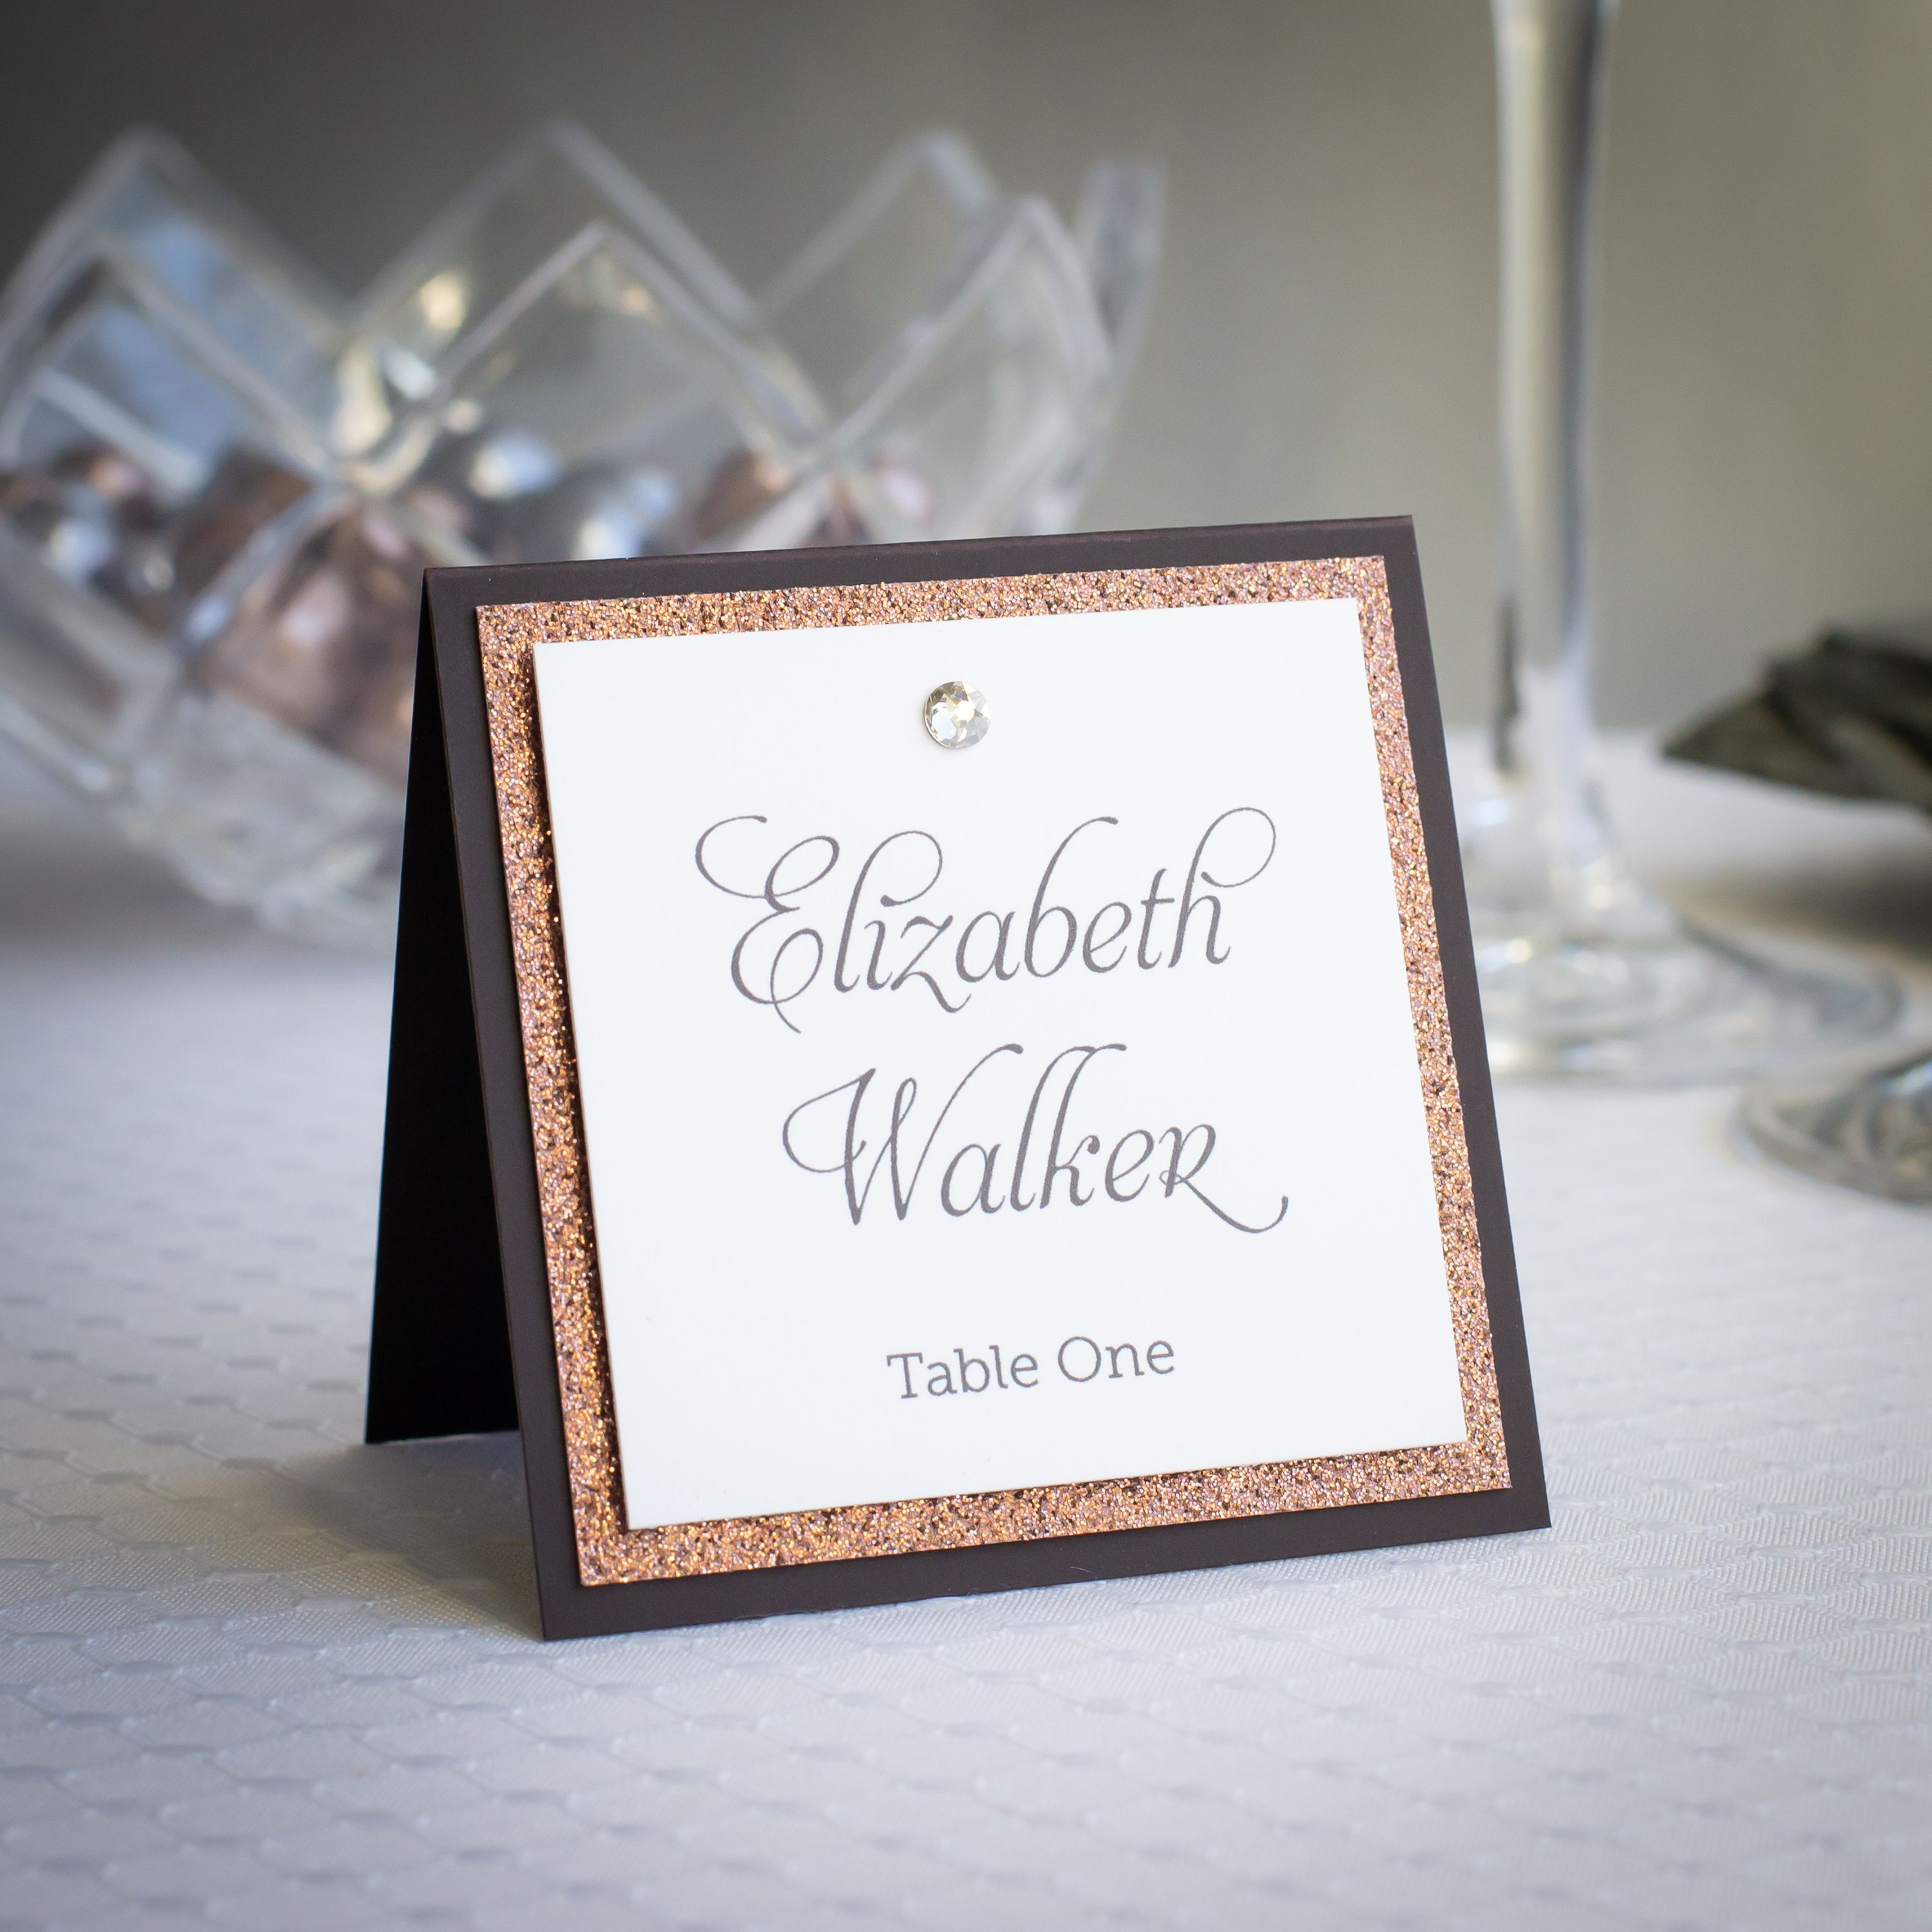 Sparkling Place Cards in 2020 Place cards, Seating cards